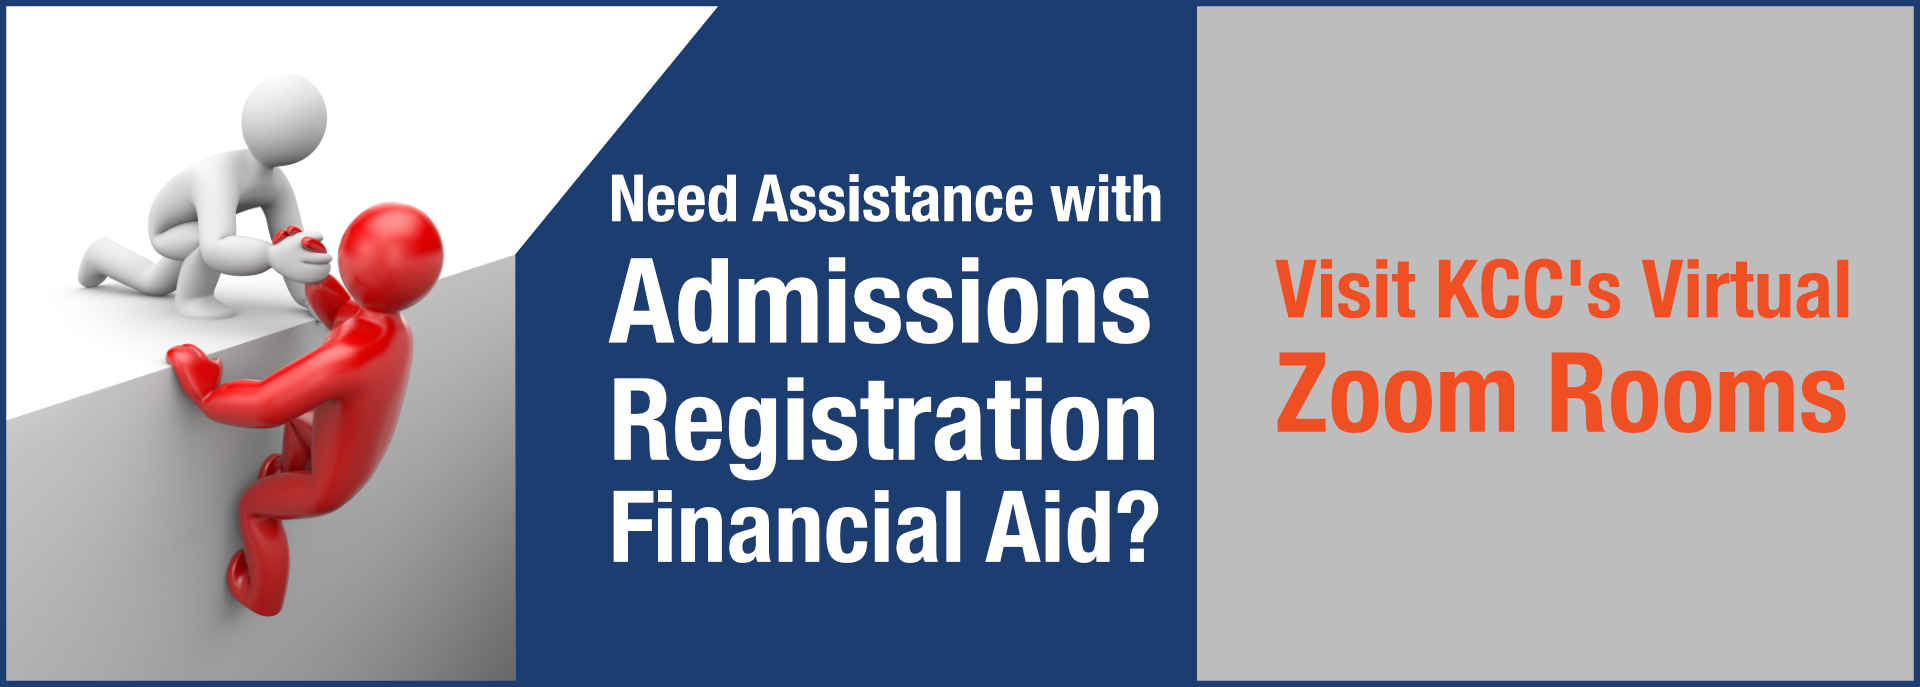 Need Assistance with Admissions, Registration, Financial Aid and more?